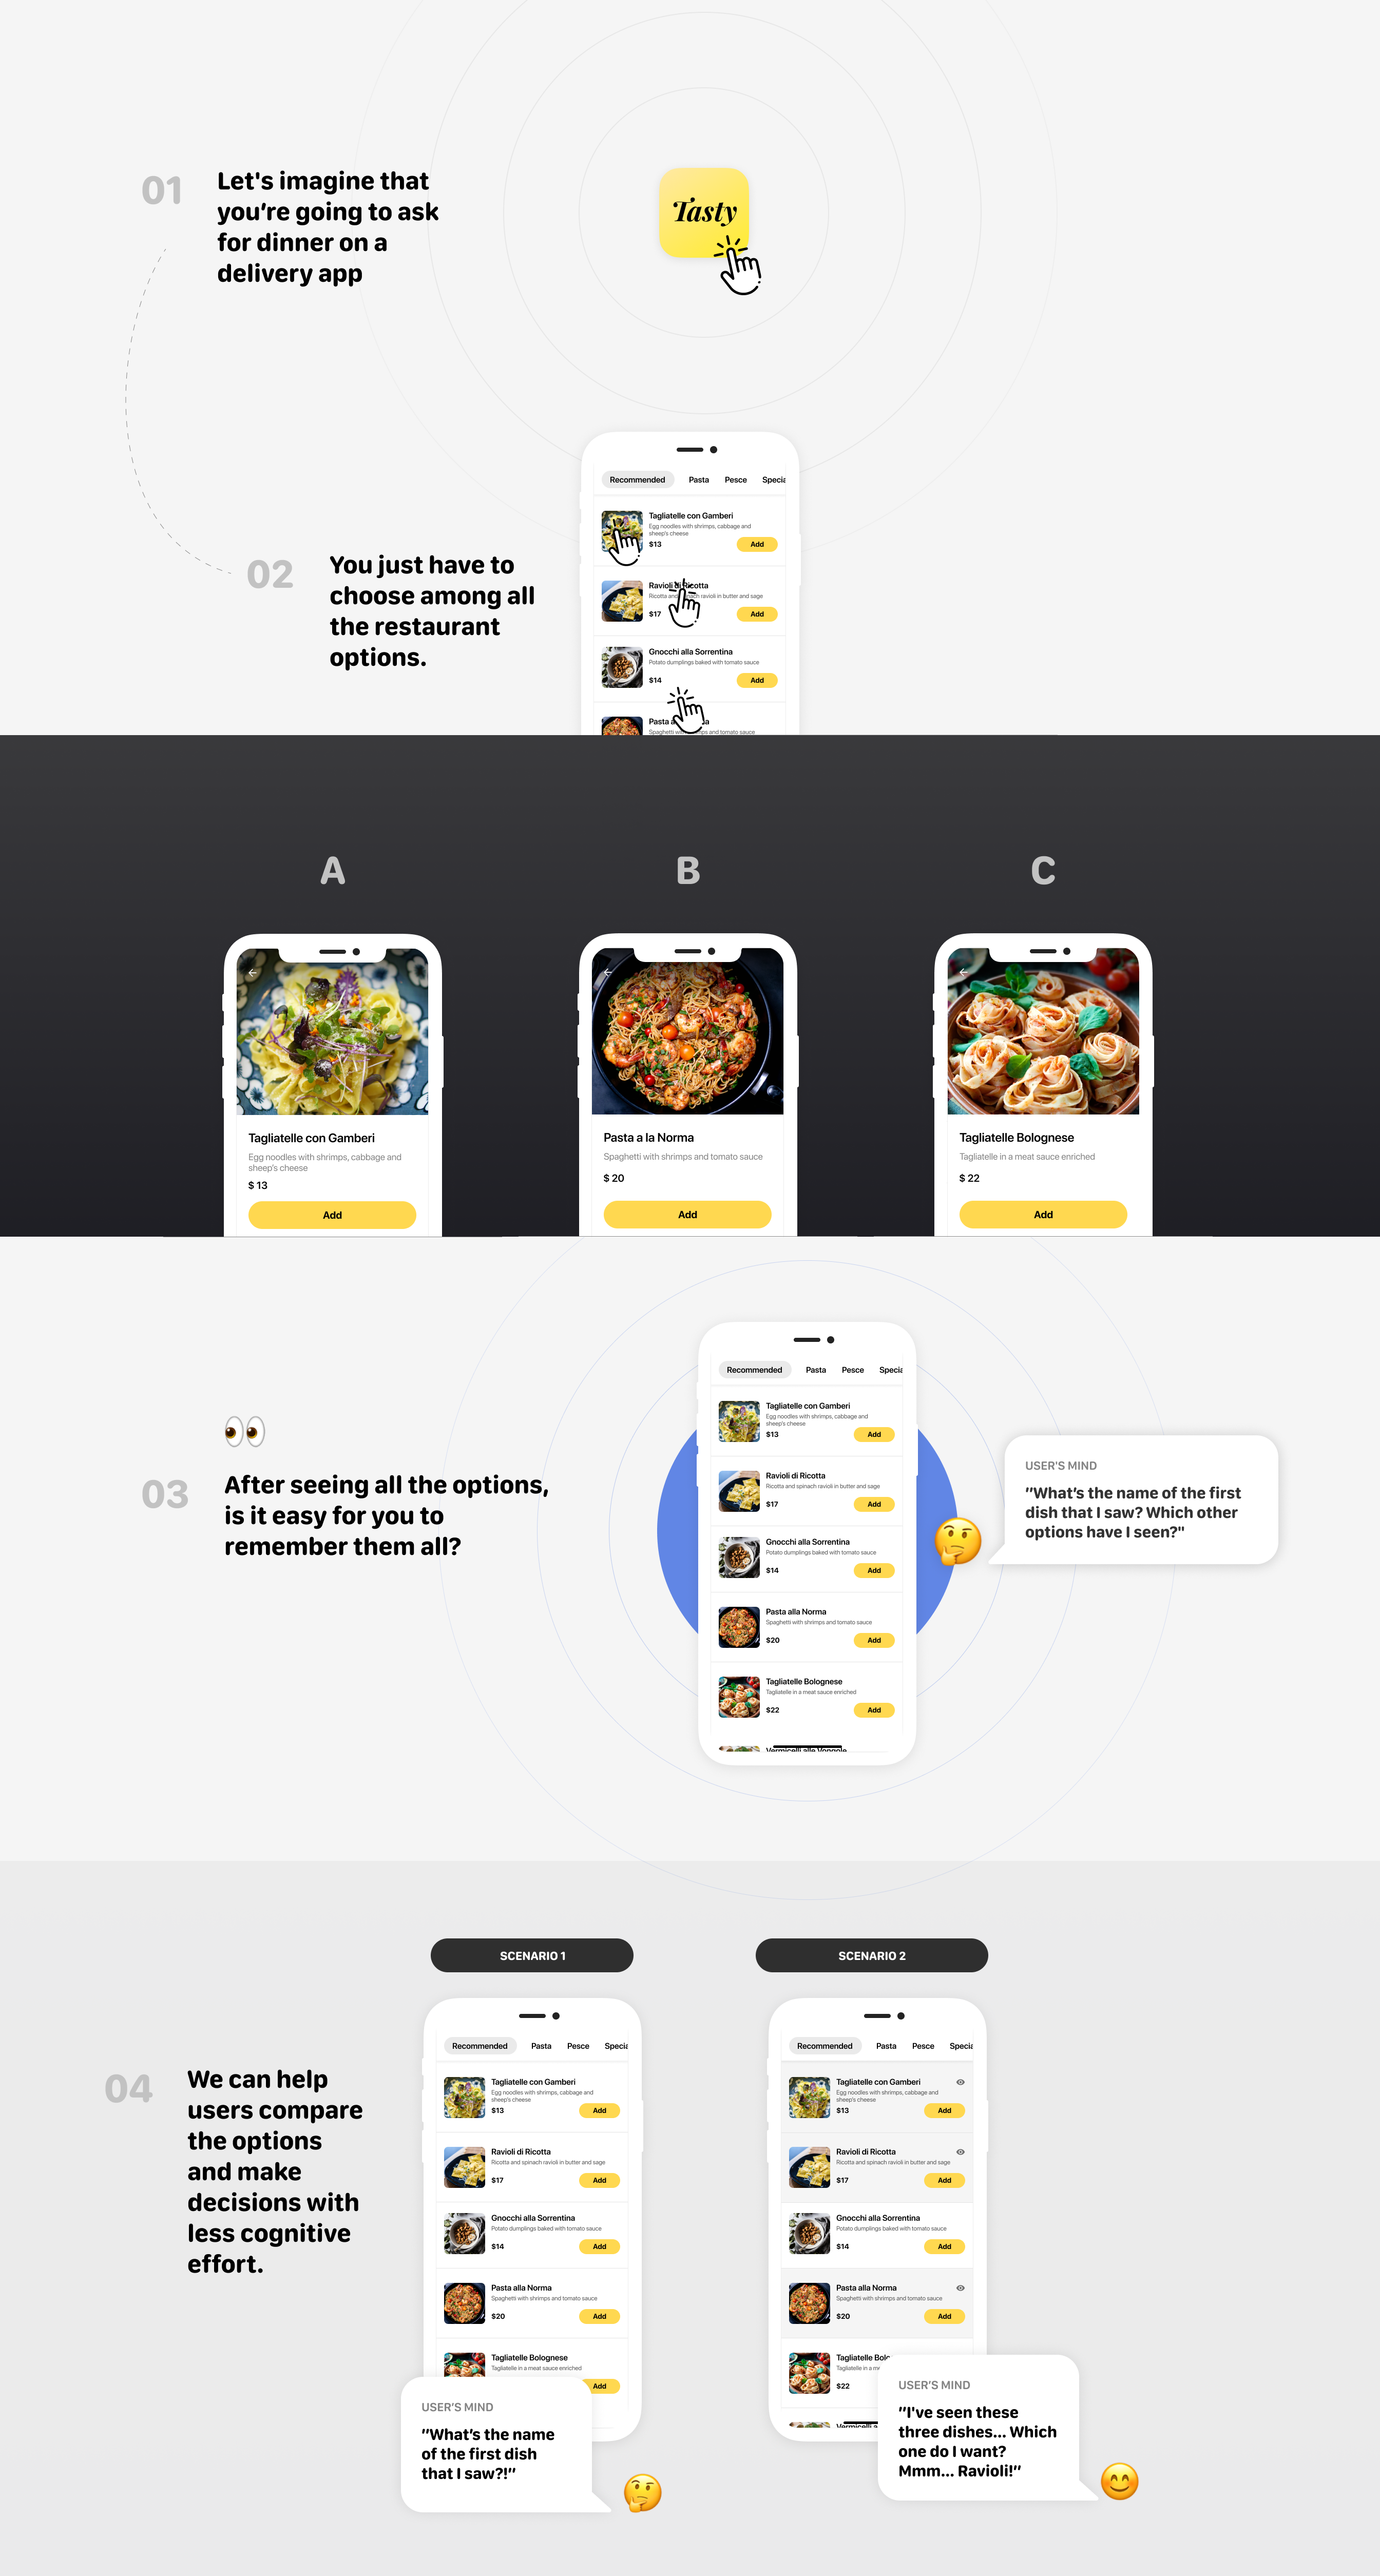 Image demonstrating the cognitive load required to choose a dish to order in a delivery app.